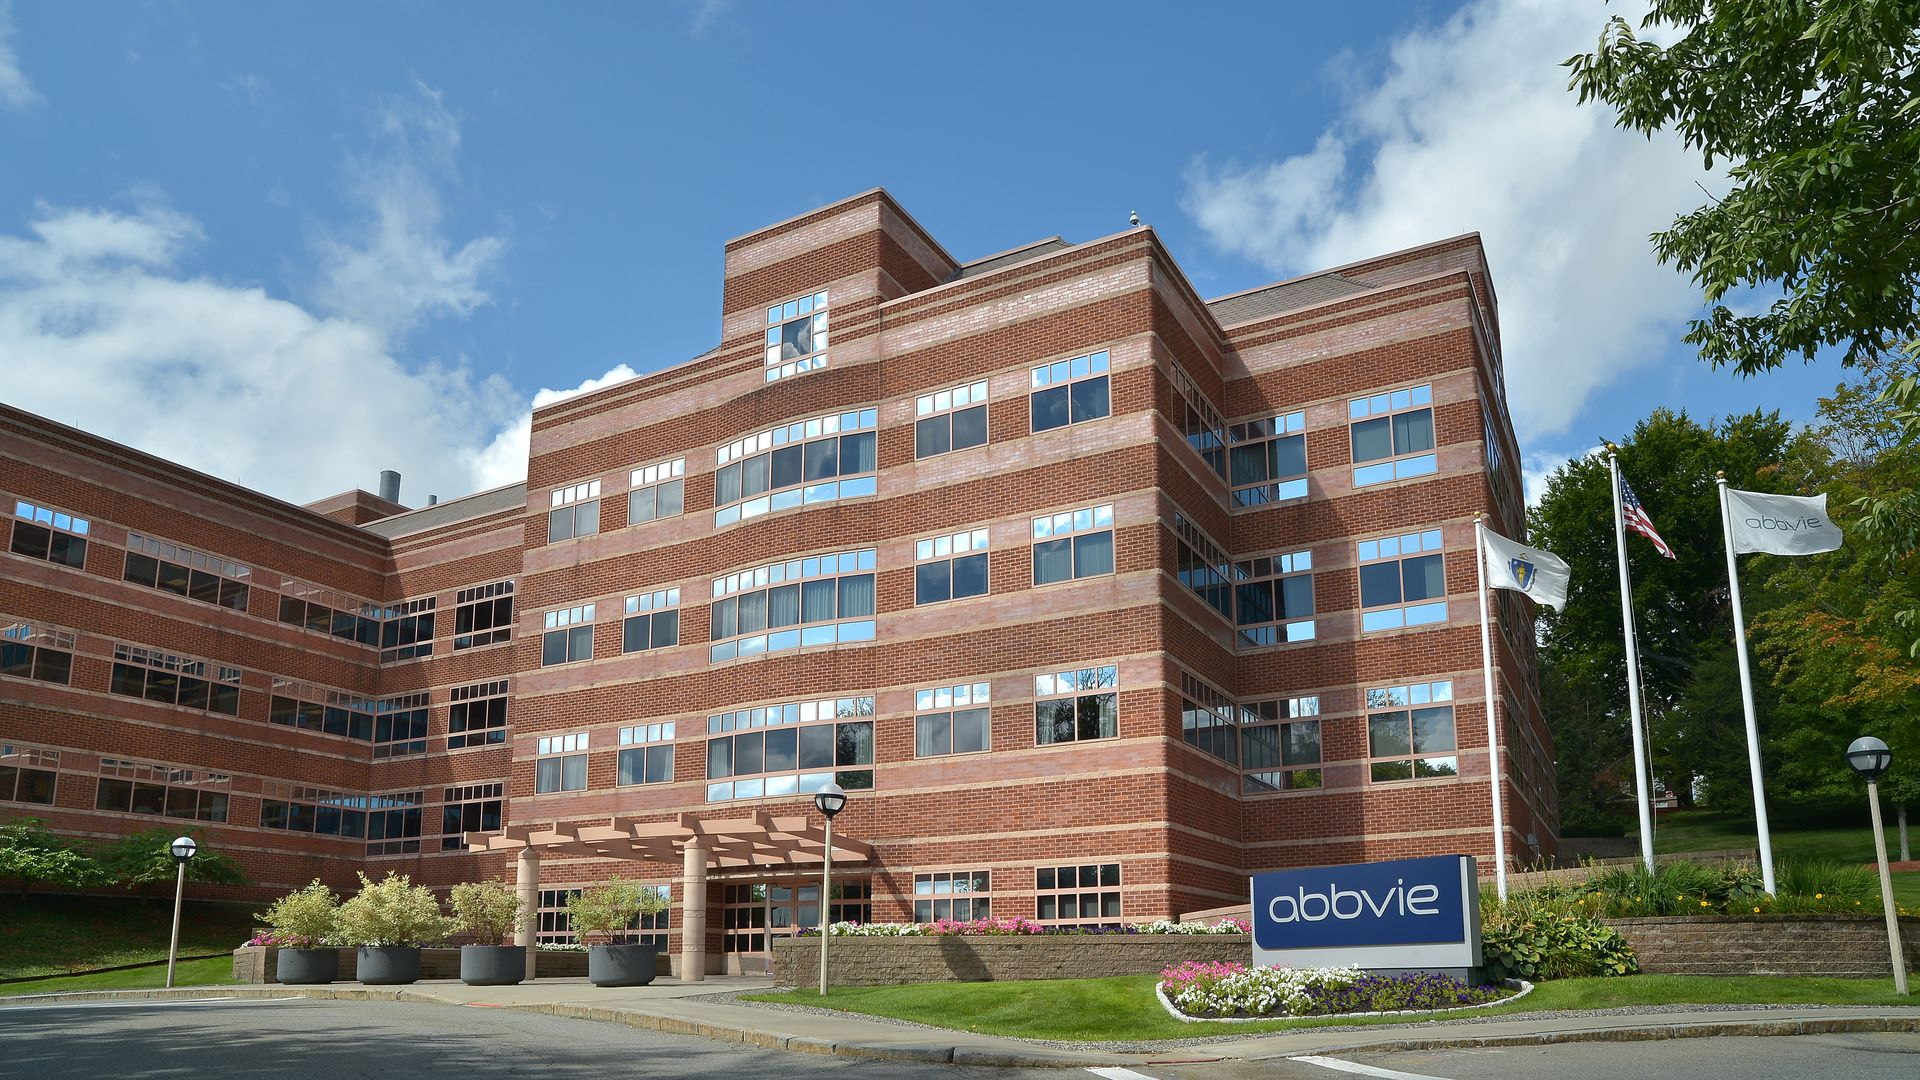 Multi-story AbbVie building with flags outside